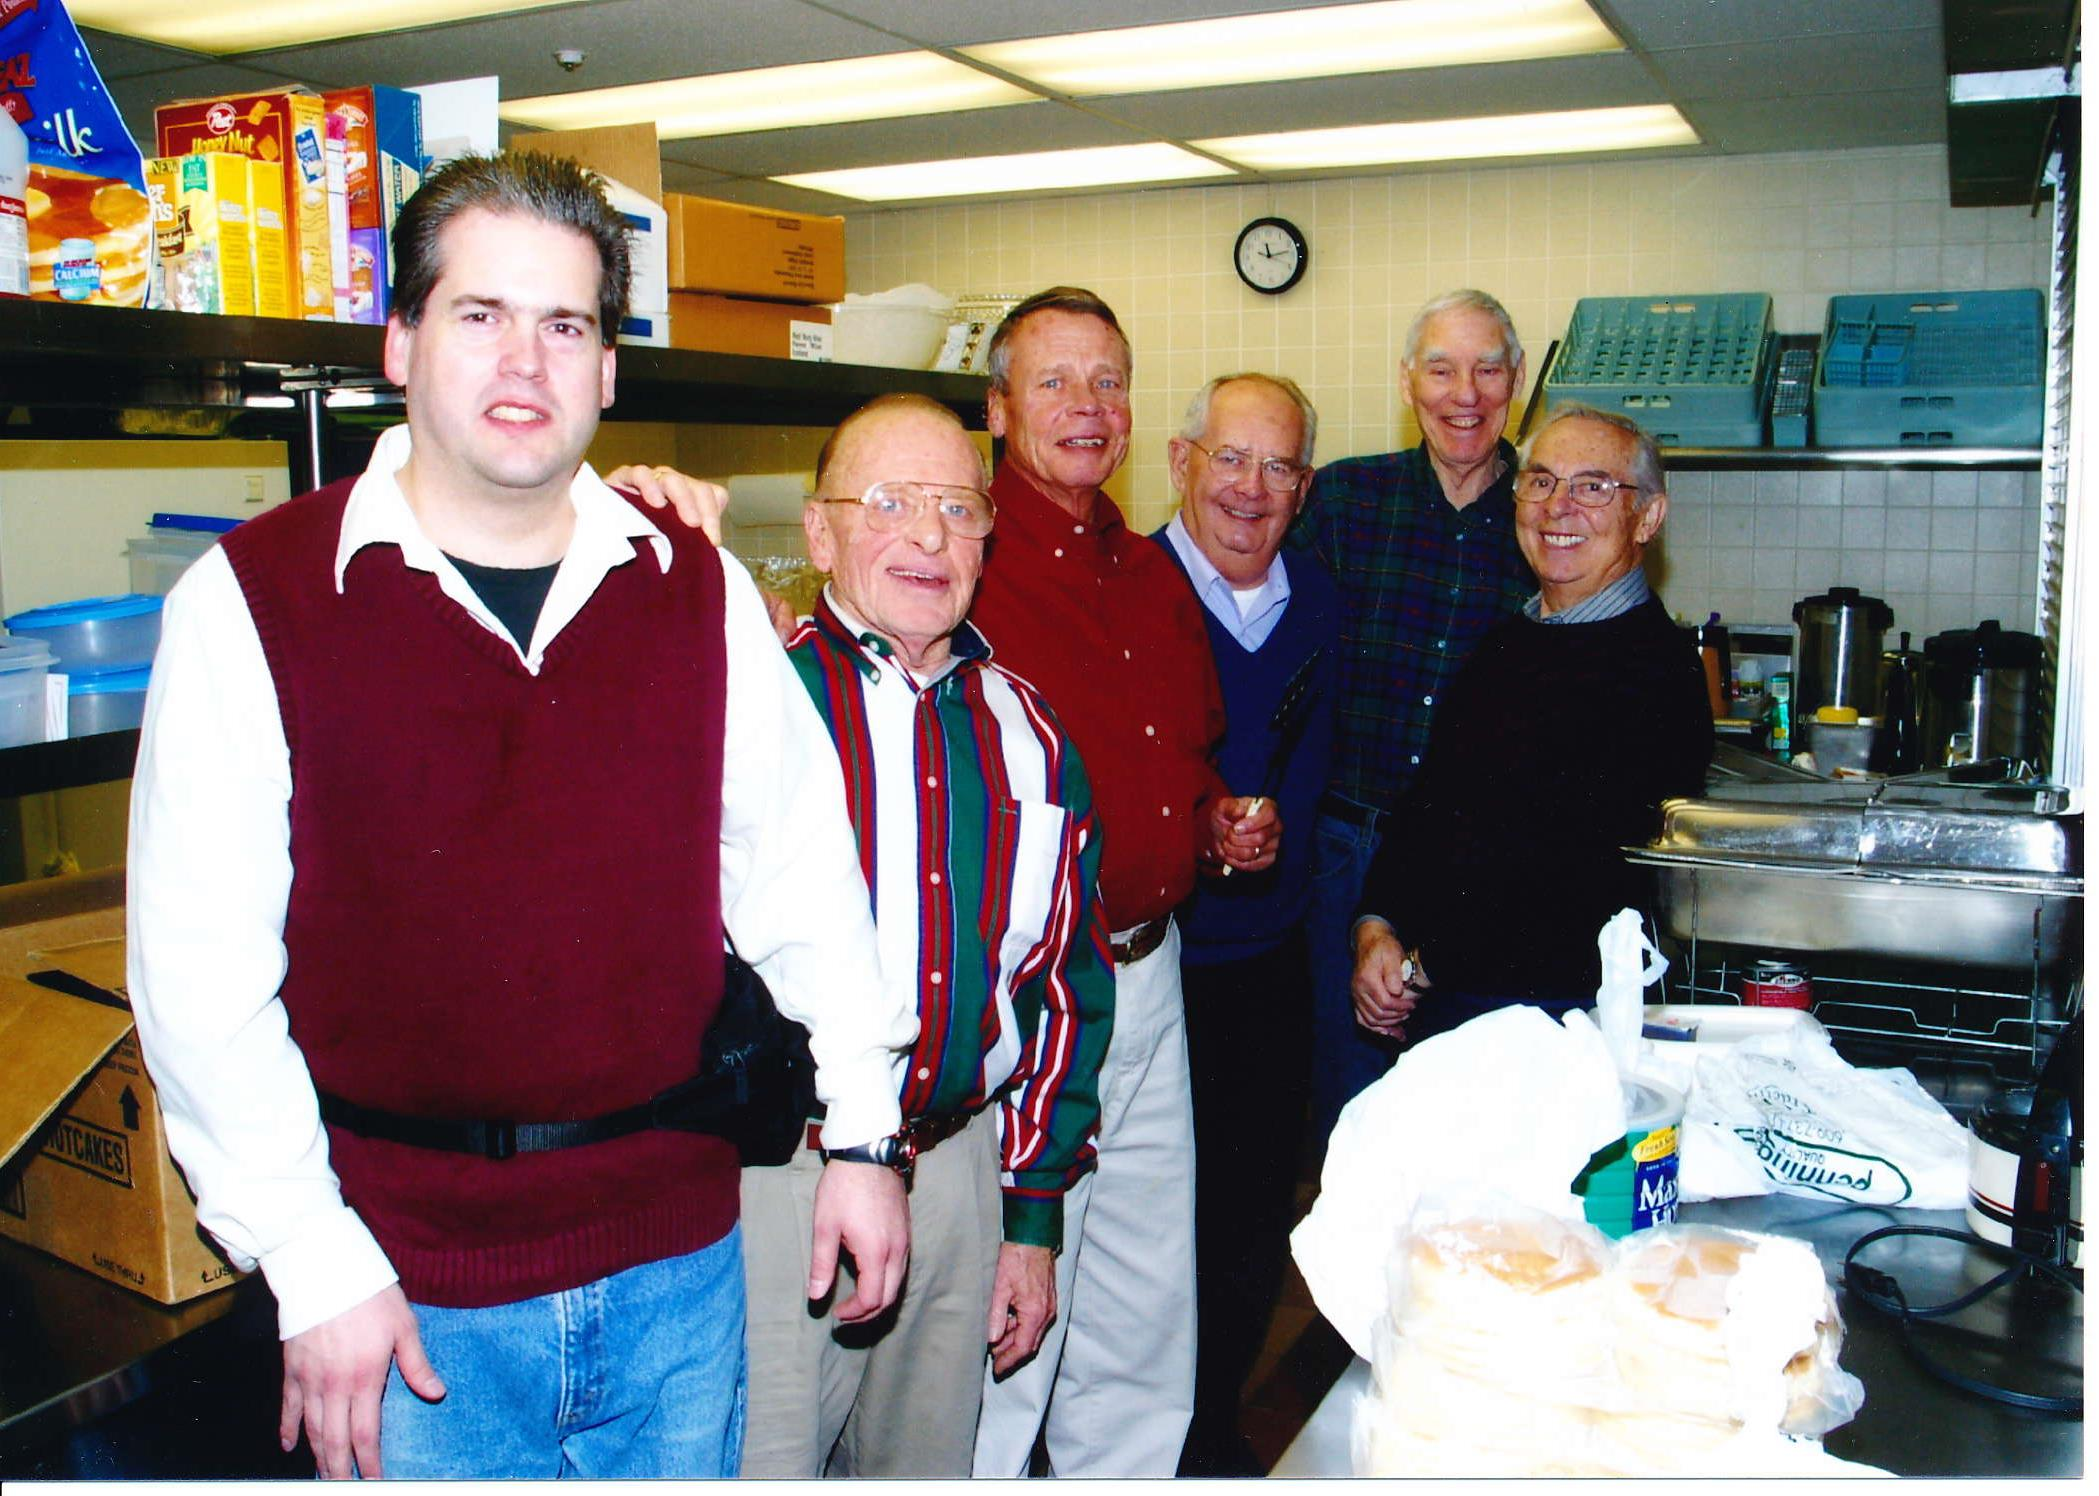 Kiwanis Club of Hopewell Valley-Pennington having a fundraiser at the Hopewell United Methodist Church in the early 2000s.